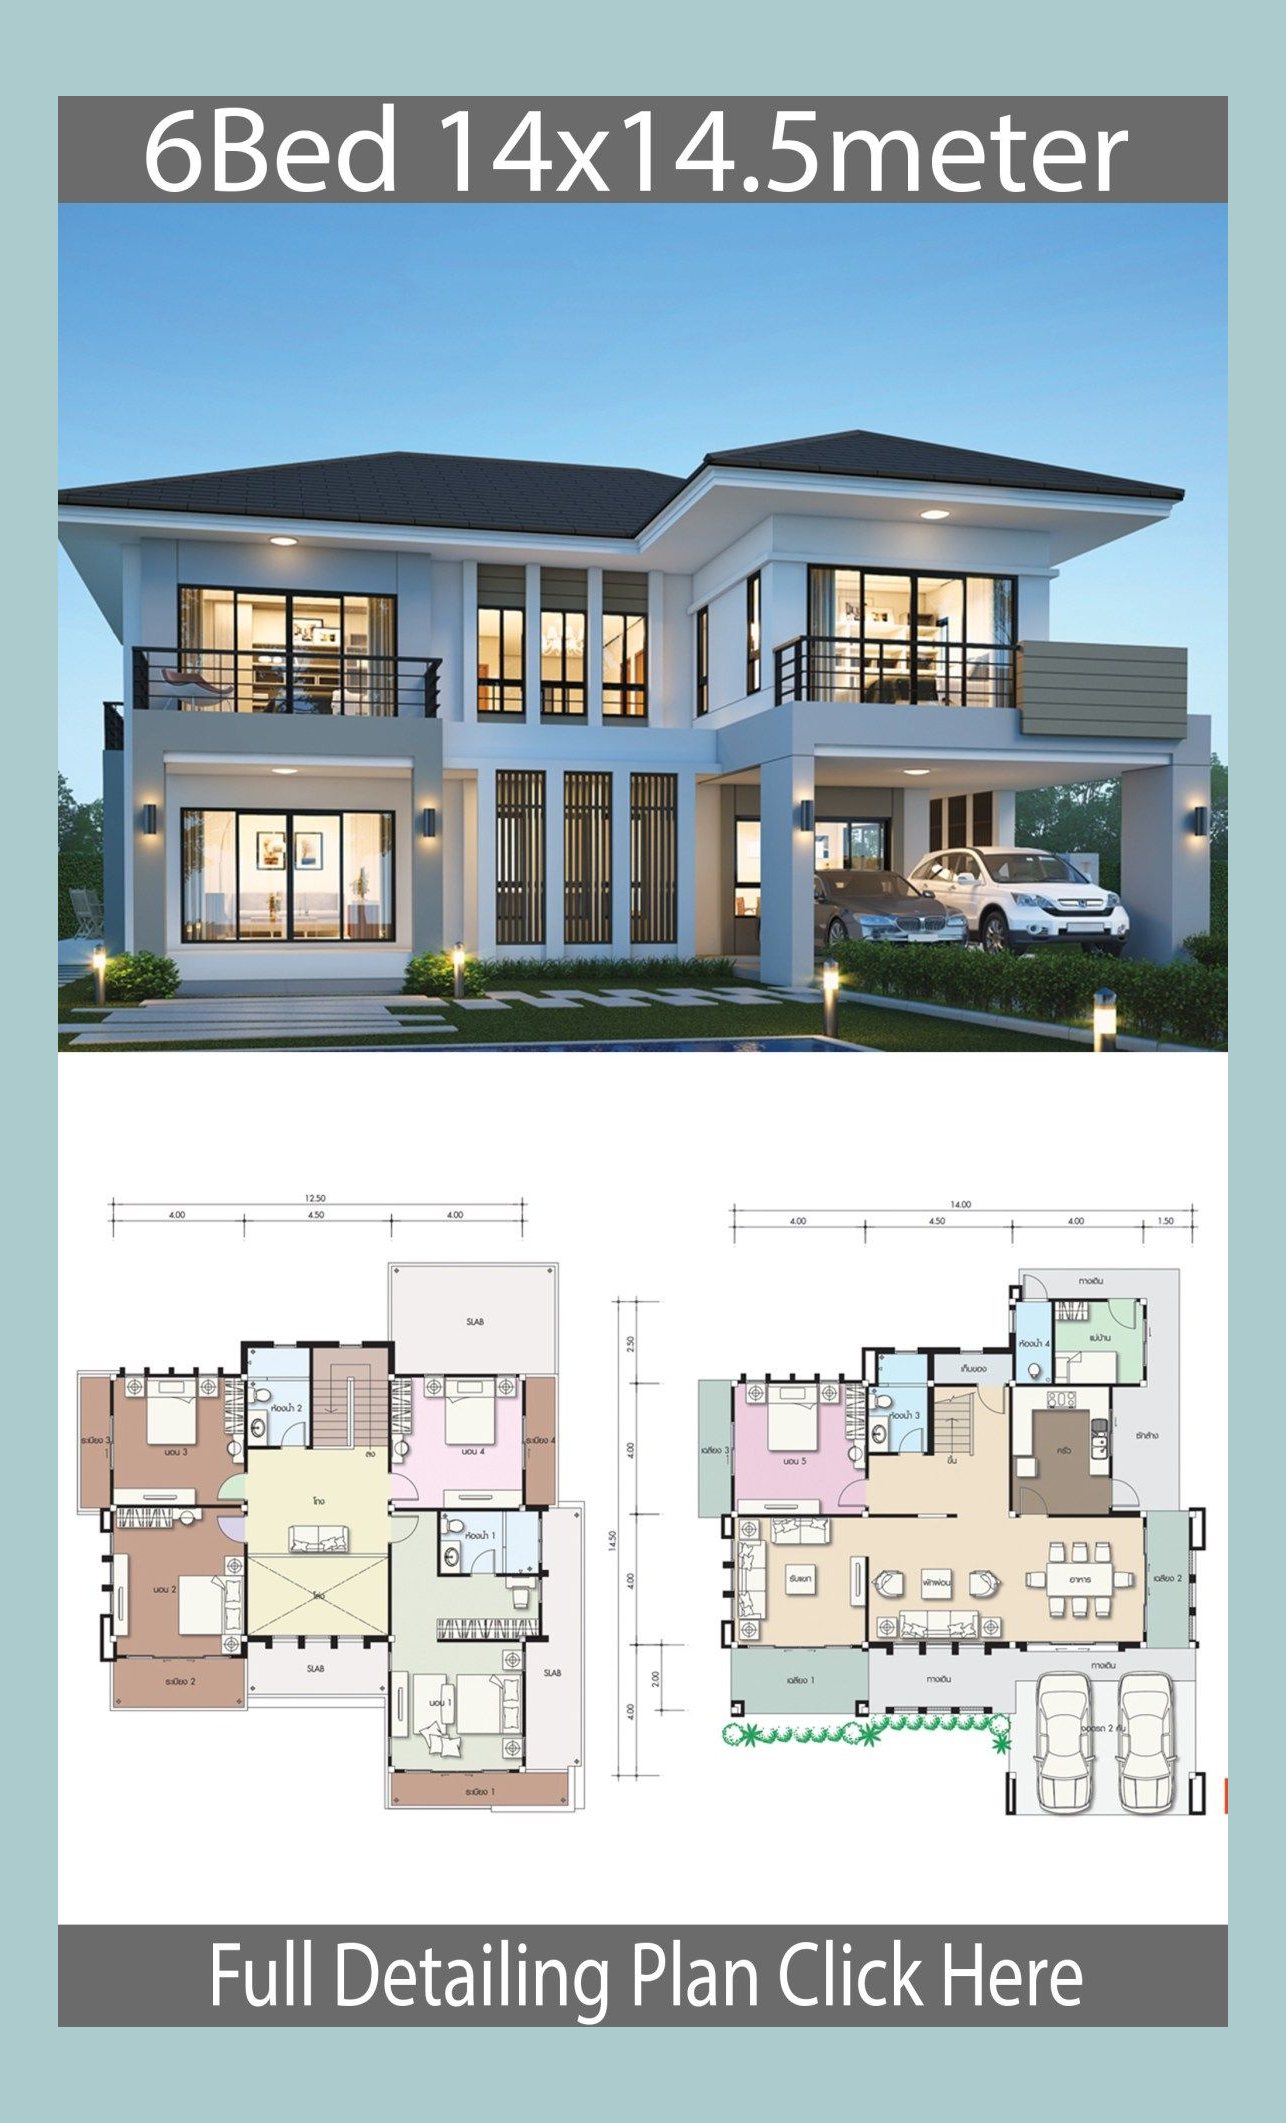 House Design Plan 14x14 5m With 6 Bedrooms Homedesign In 2020 Beautiful House Plans Architectural House Plans Model House Plan